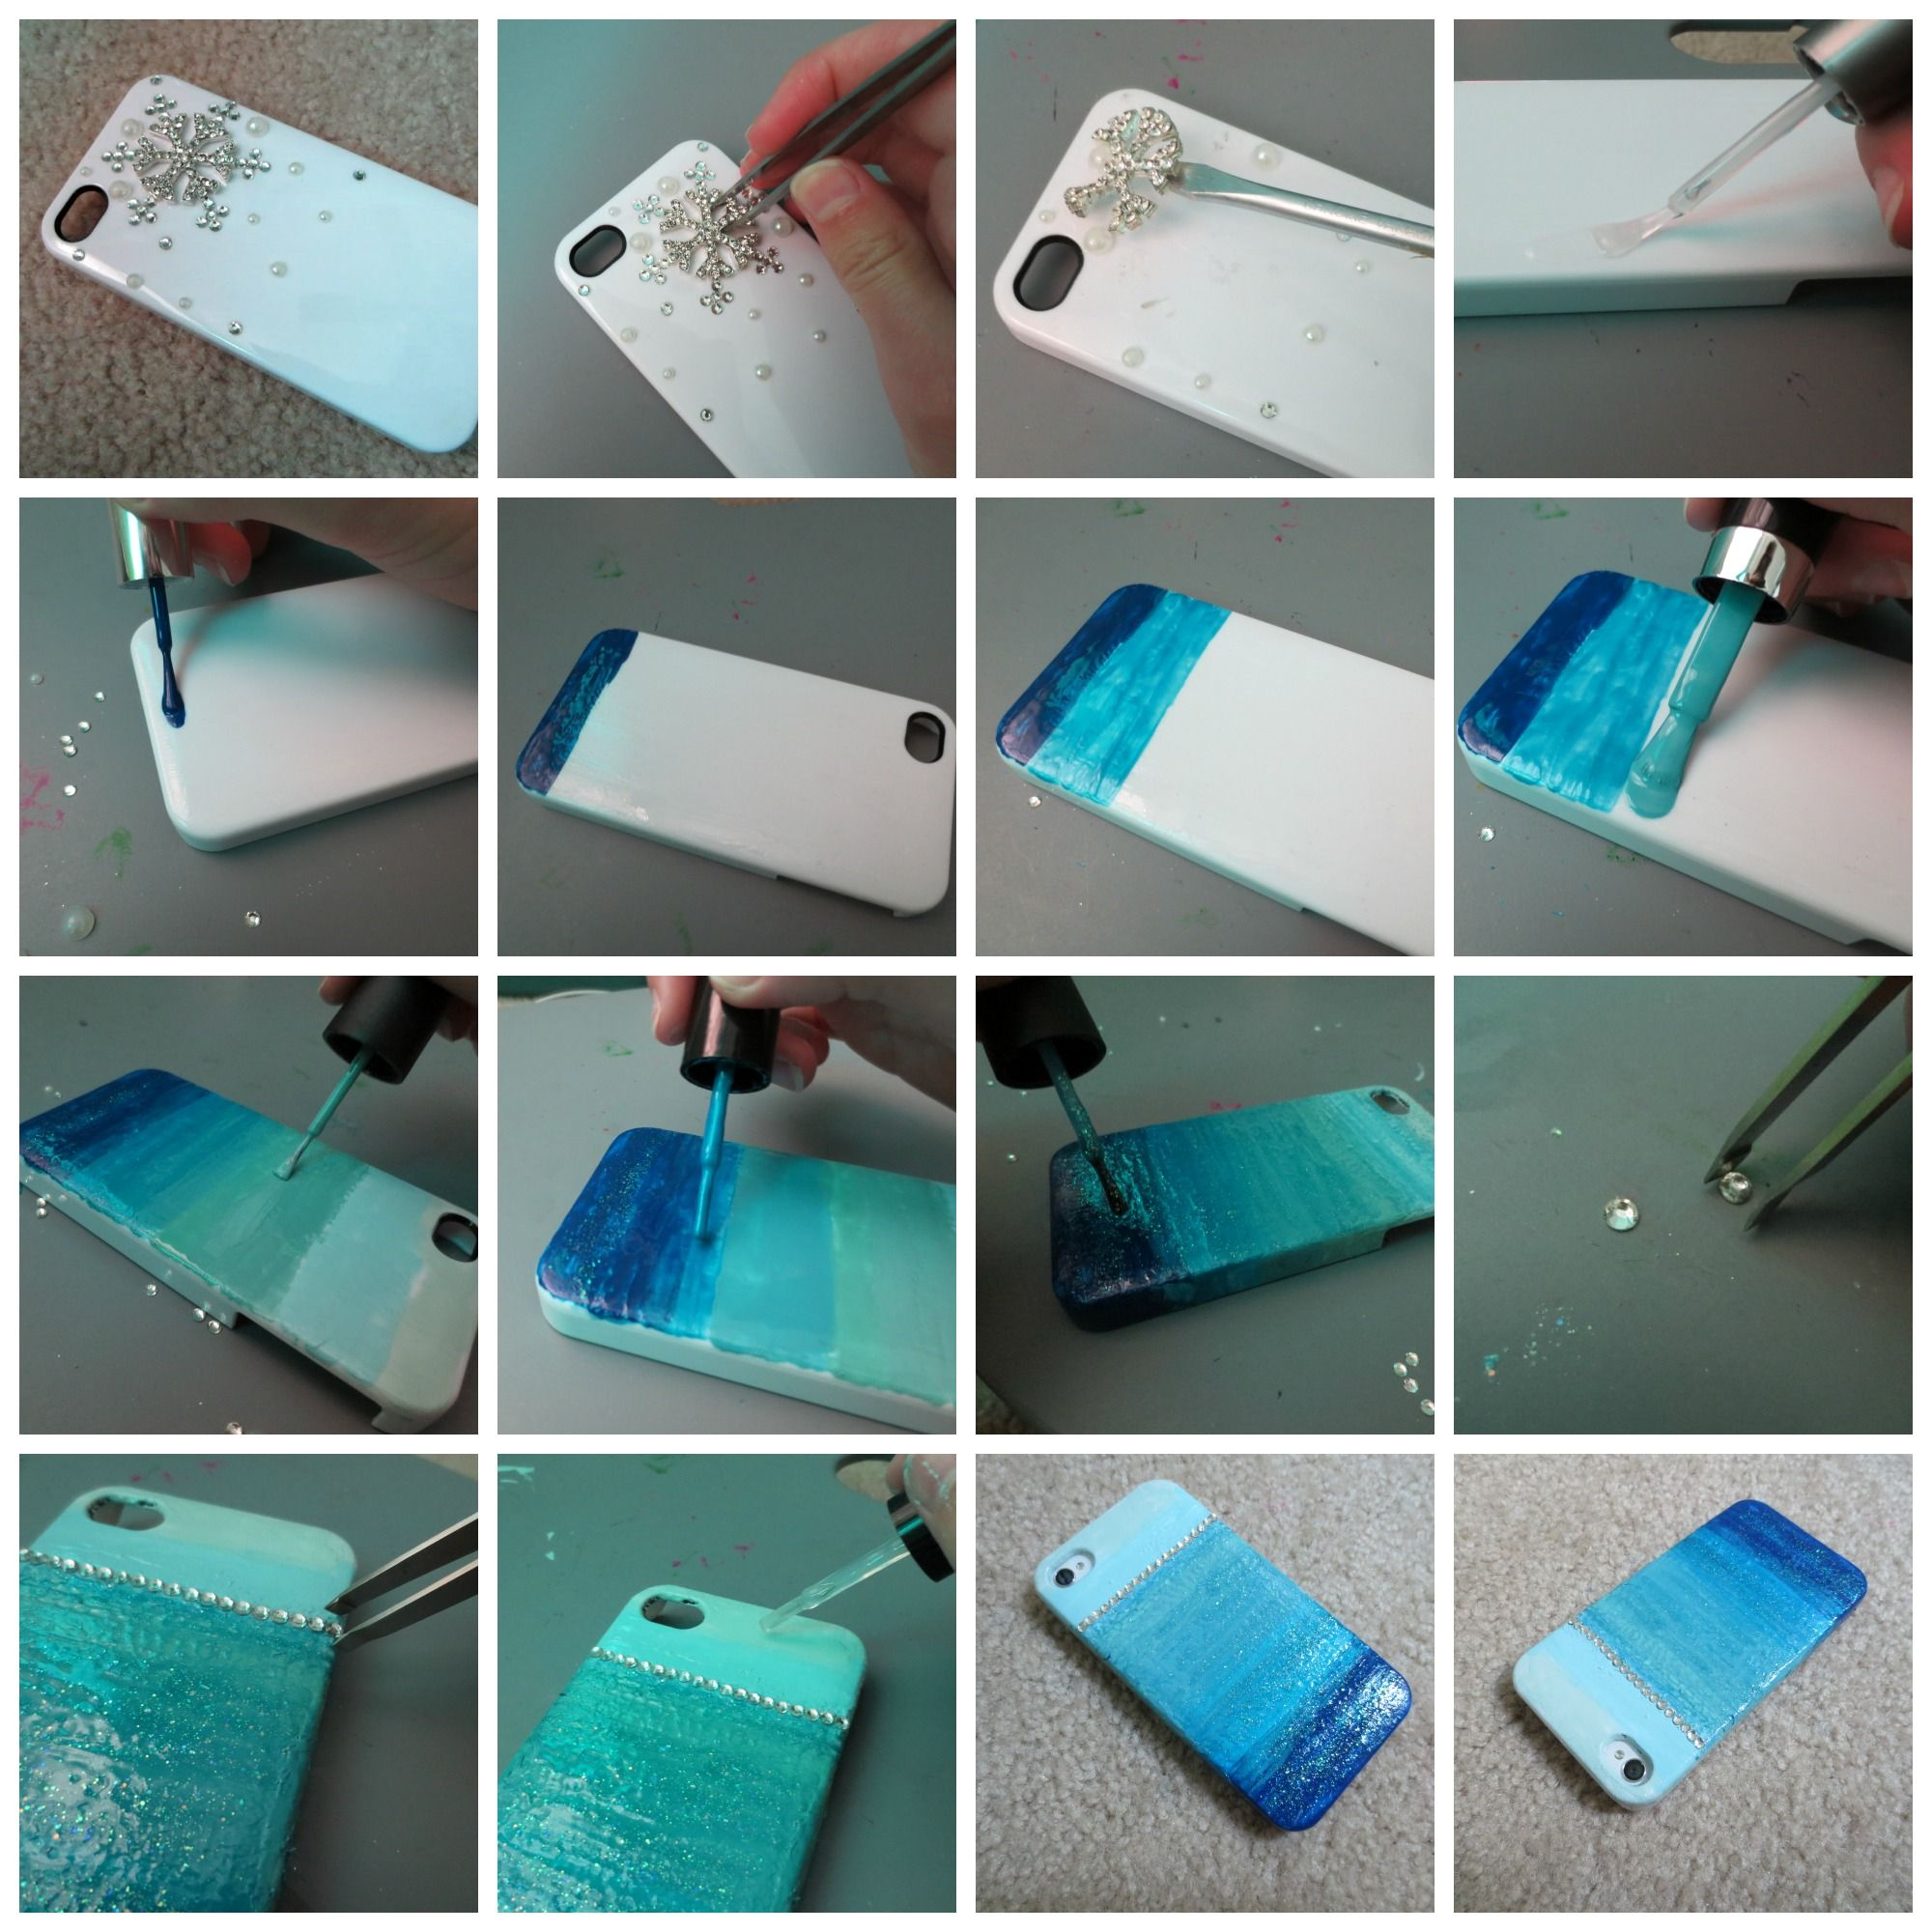 Use Nail Polish To Make Your Own Phone Case Diy Phone Case Diy Phone Diy Mobile Cover